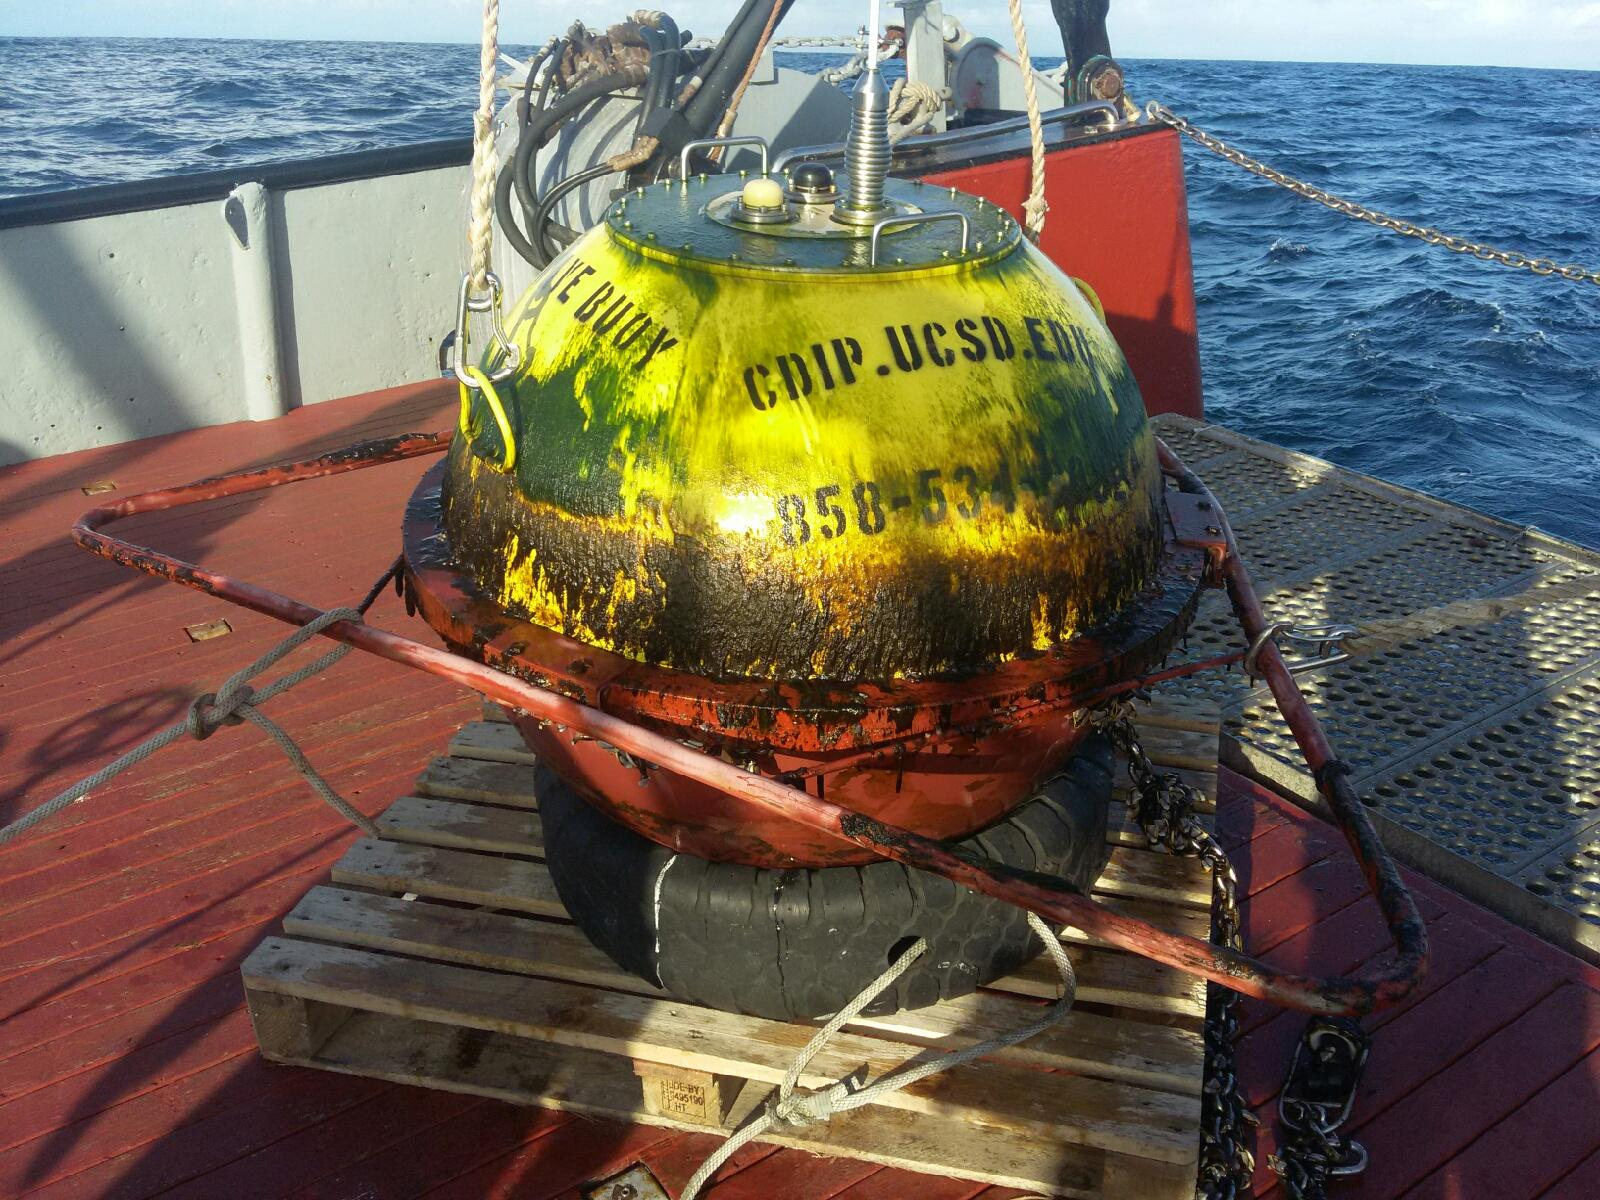 Buoy recovered on vessel